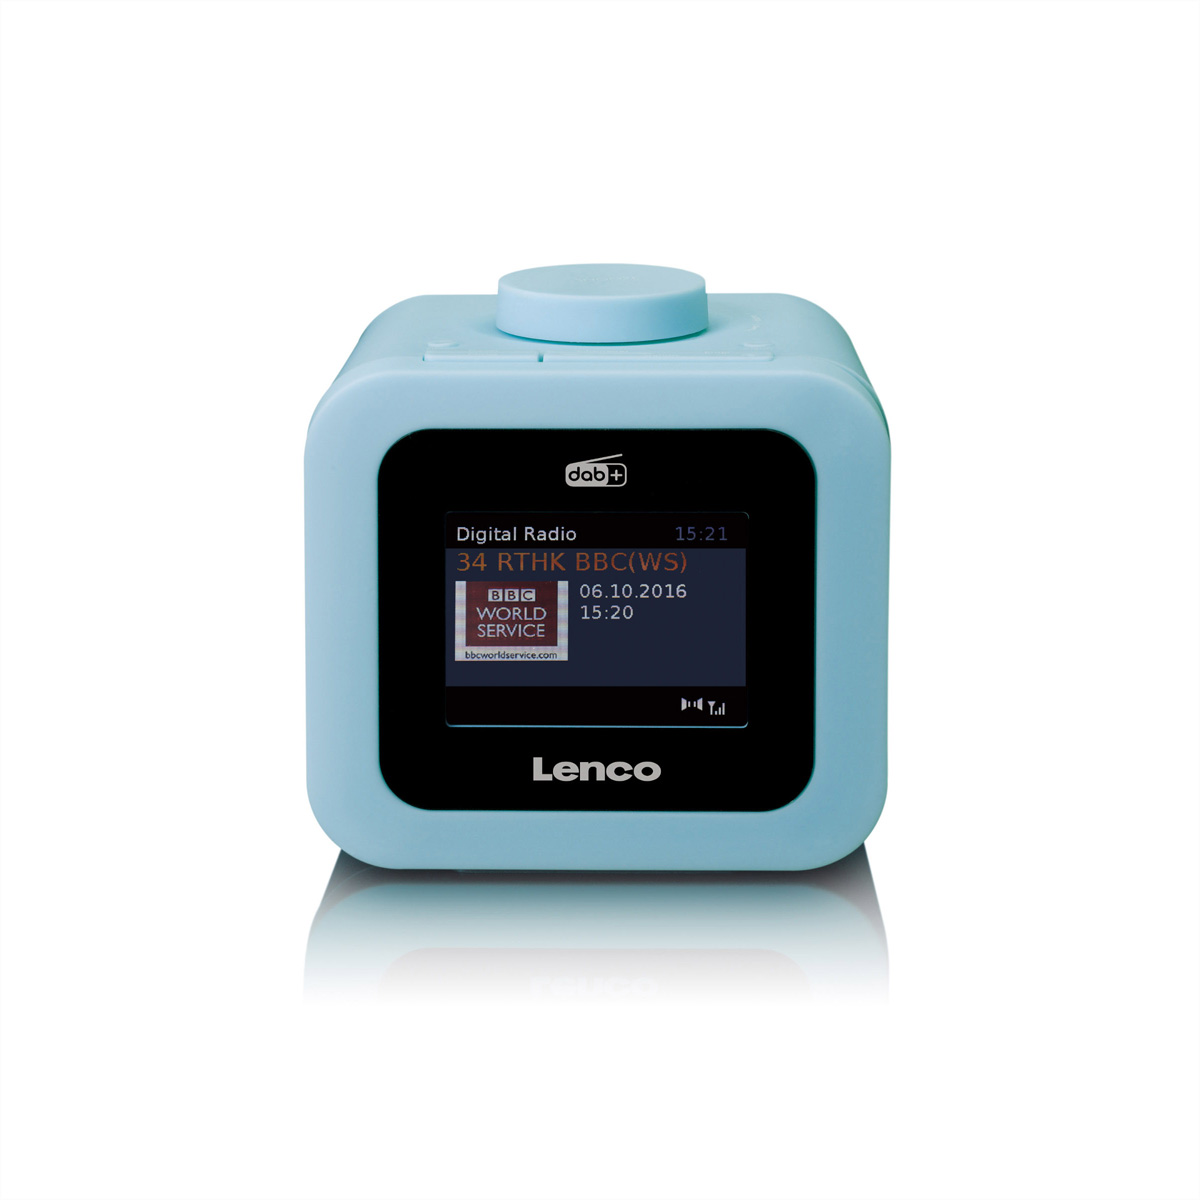 Lenco CR-620 Radiowecker blau, DAB+